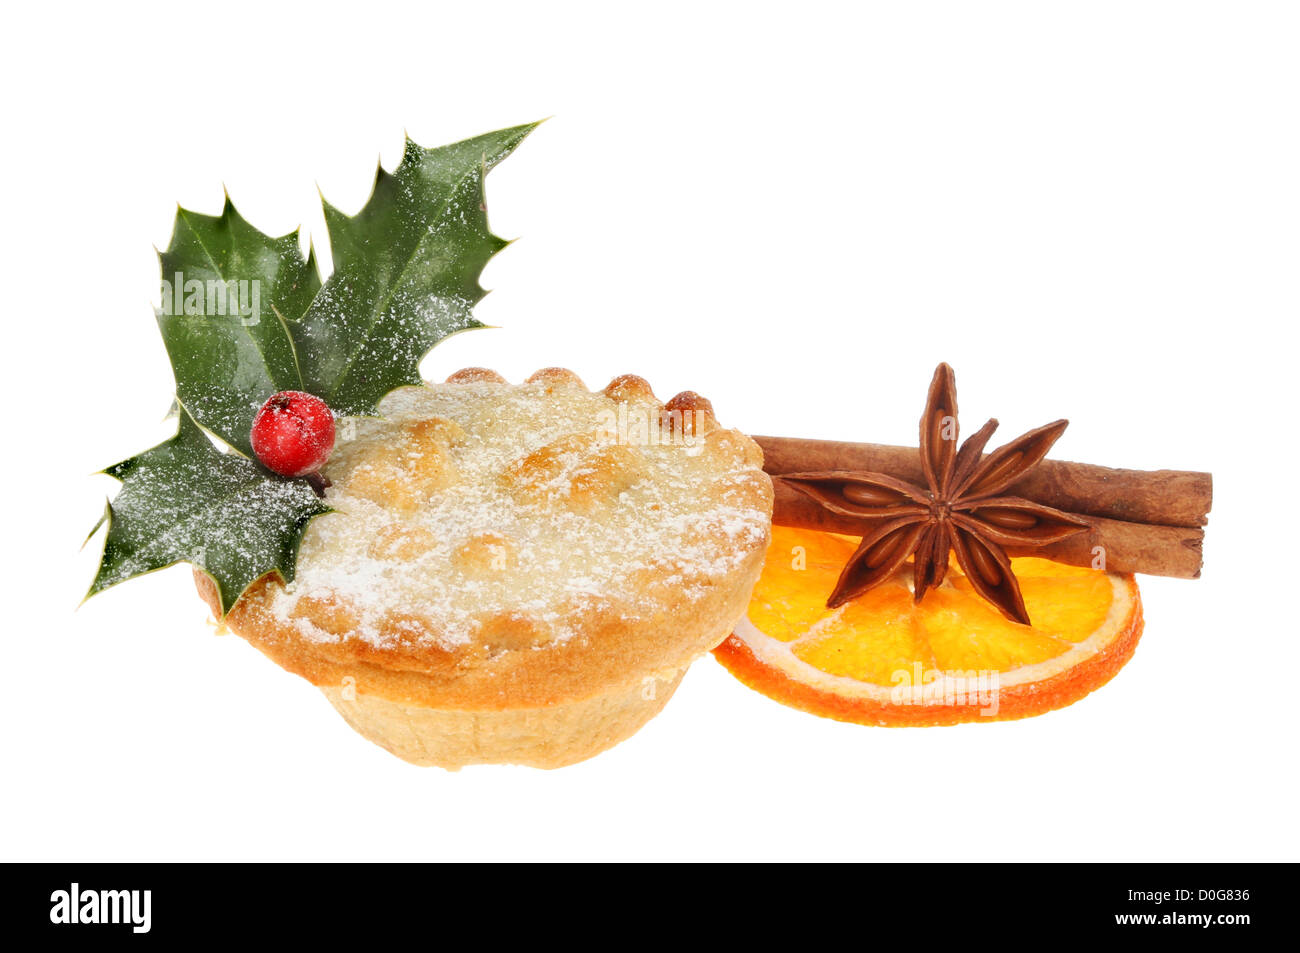 Mince pie decorated with holly and icing sugar with a slice of dried orange cinnamon and star anise - Stock Image